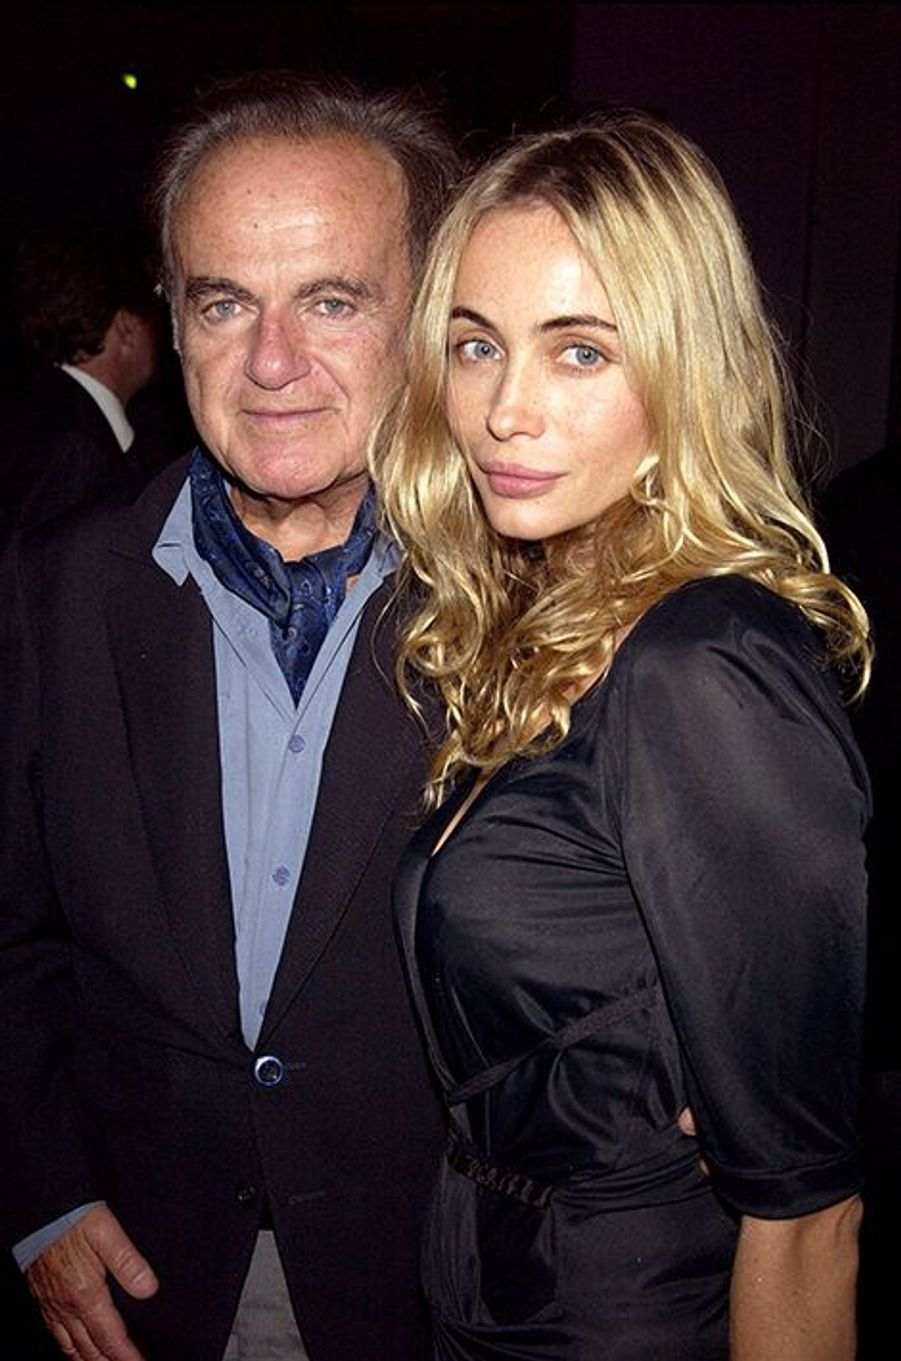 "Guy et Emmanuelle Béart à Paris en 2003. Le binôme assistait à l'événement ""Sony Dream World"" au Palais des Congrès."